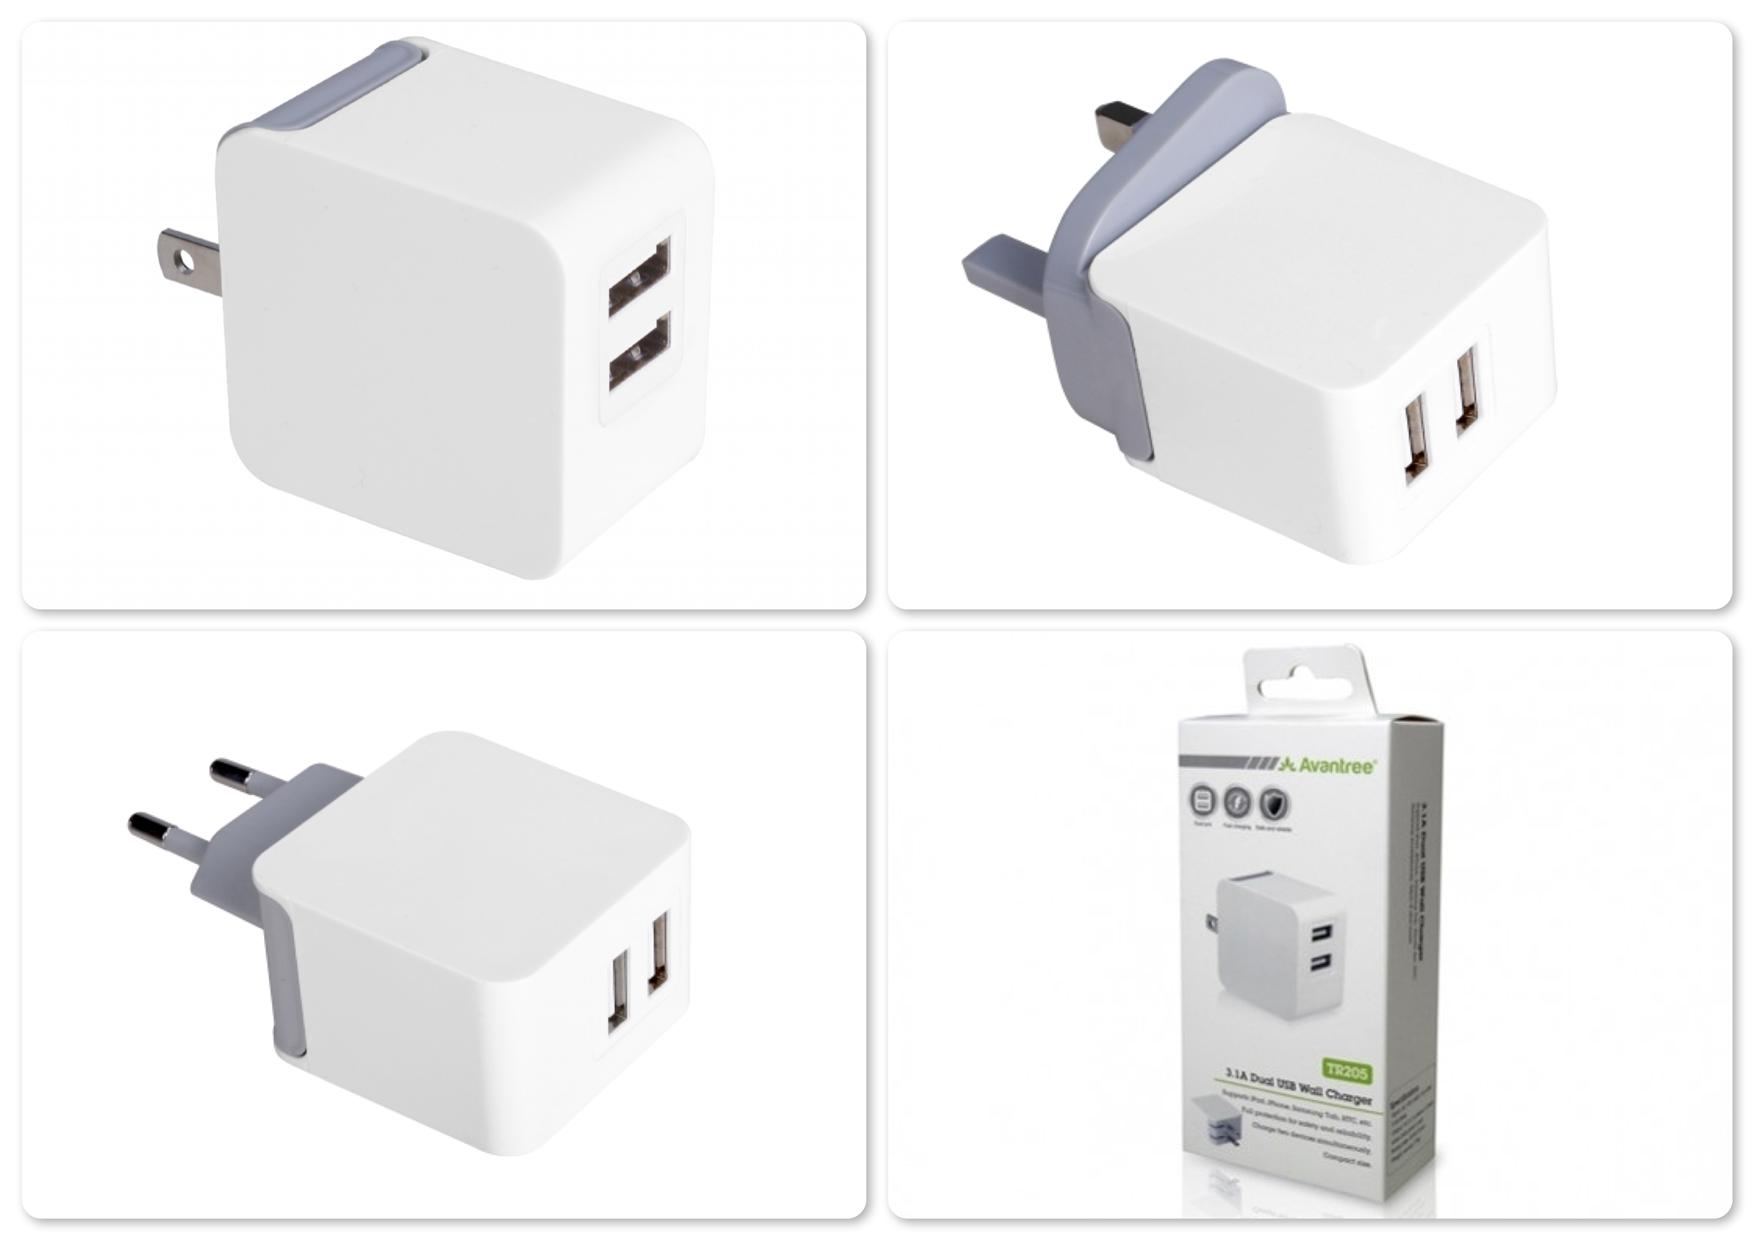 Bdtcom = Avantree 15.5W Dual USB Port Wall Charger - TR205